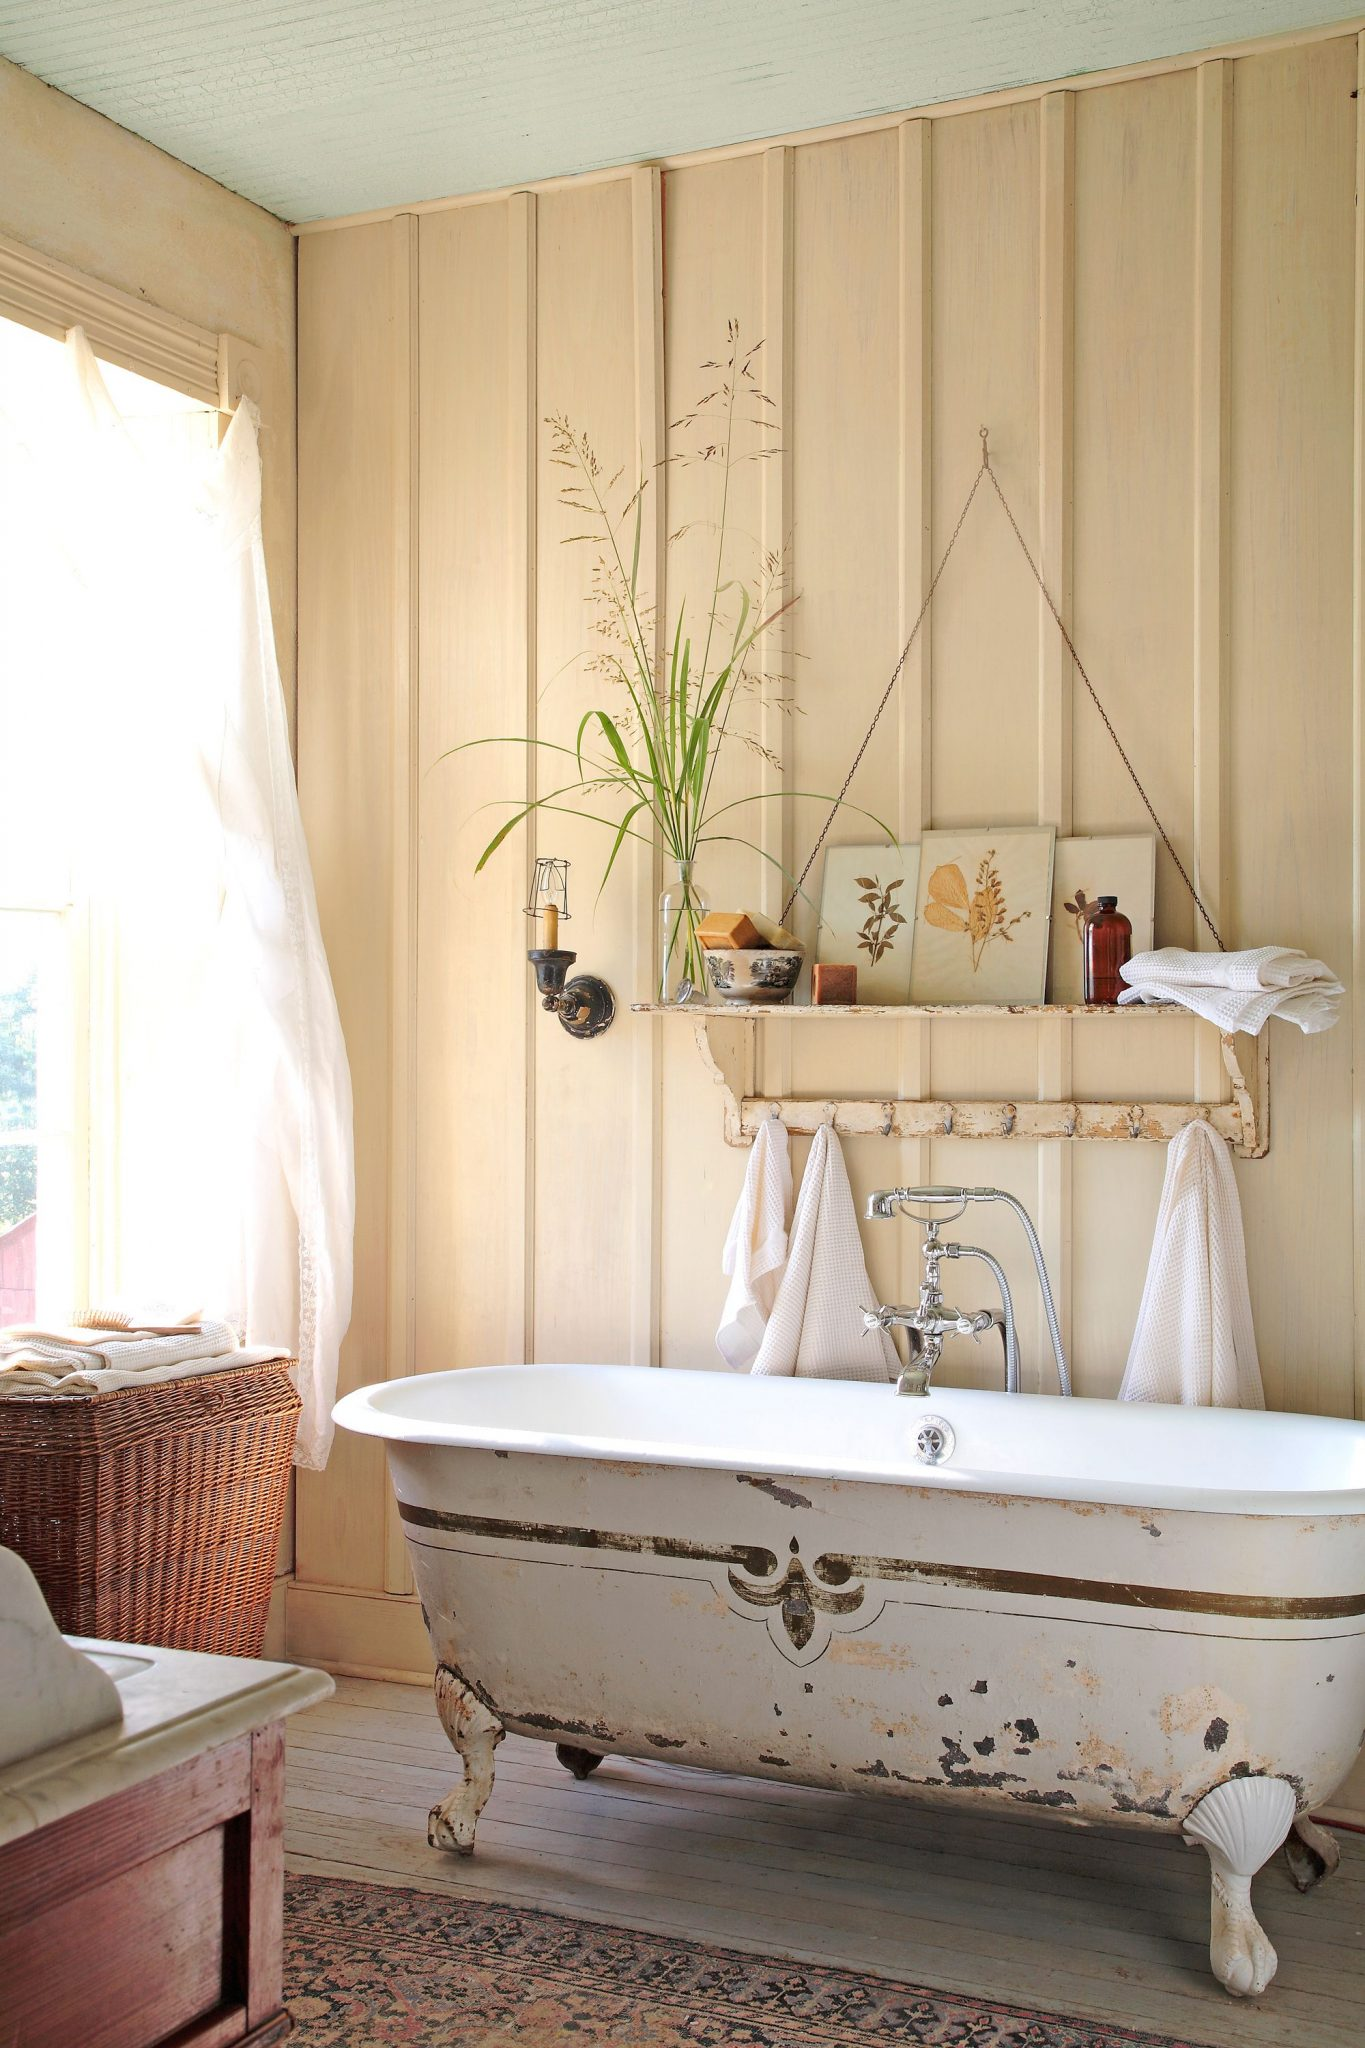 Antique bathroom accessories to complete the rustic style